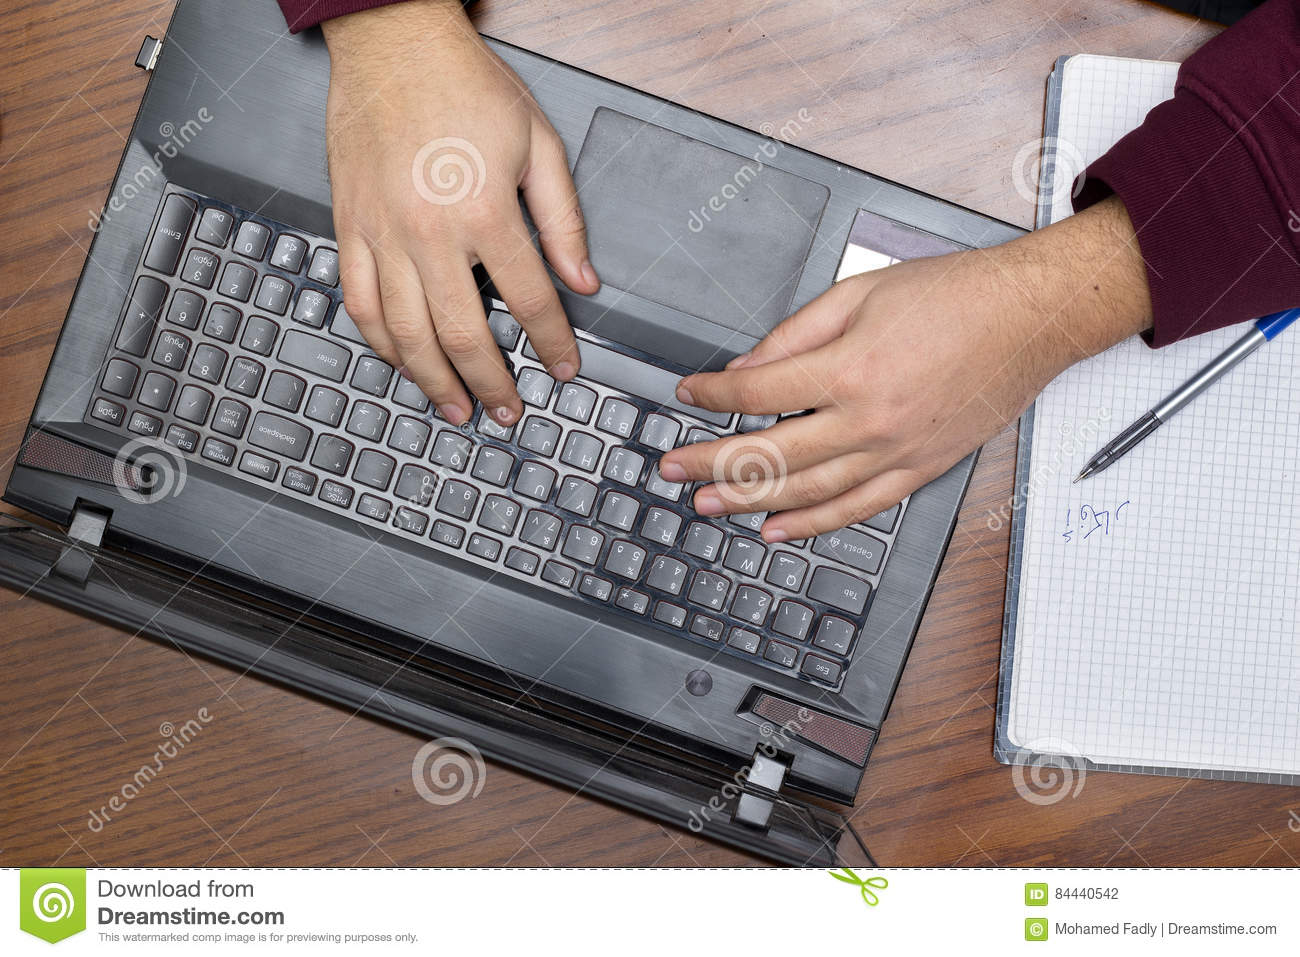 Closeup on Hands Typing on Keyboard, Notebook and Pen